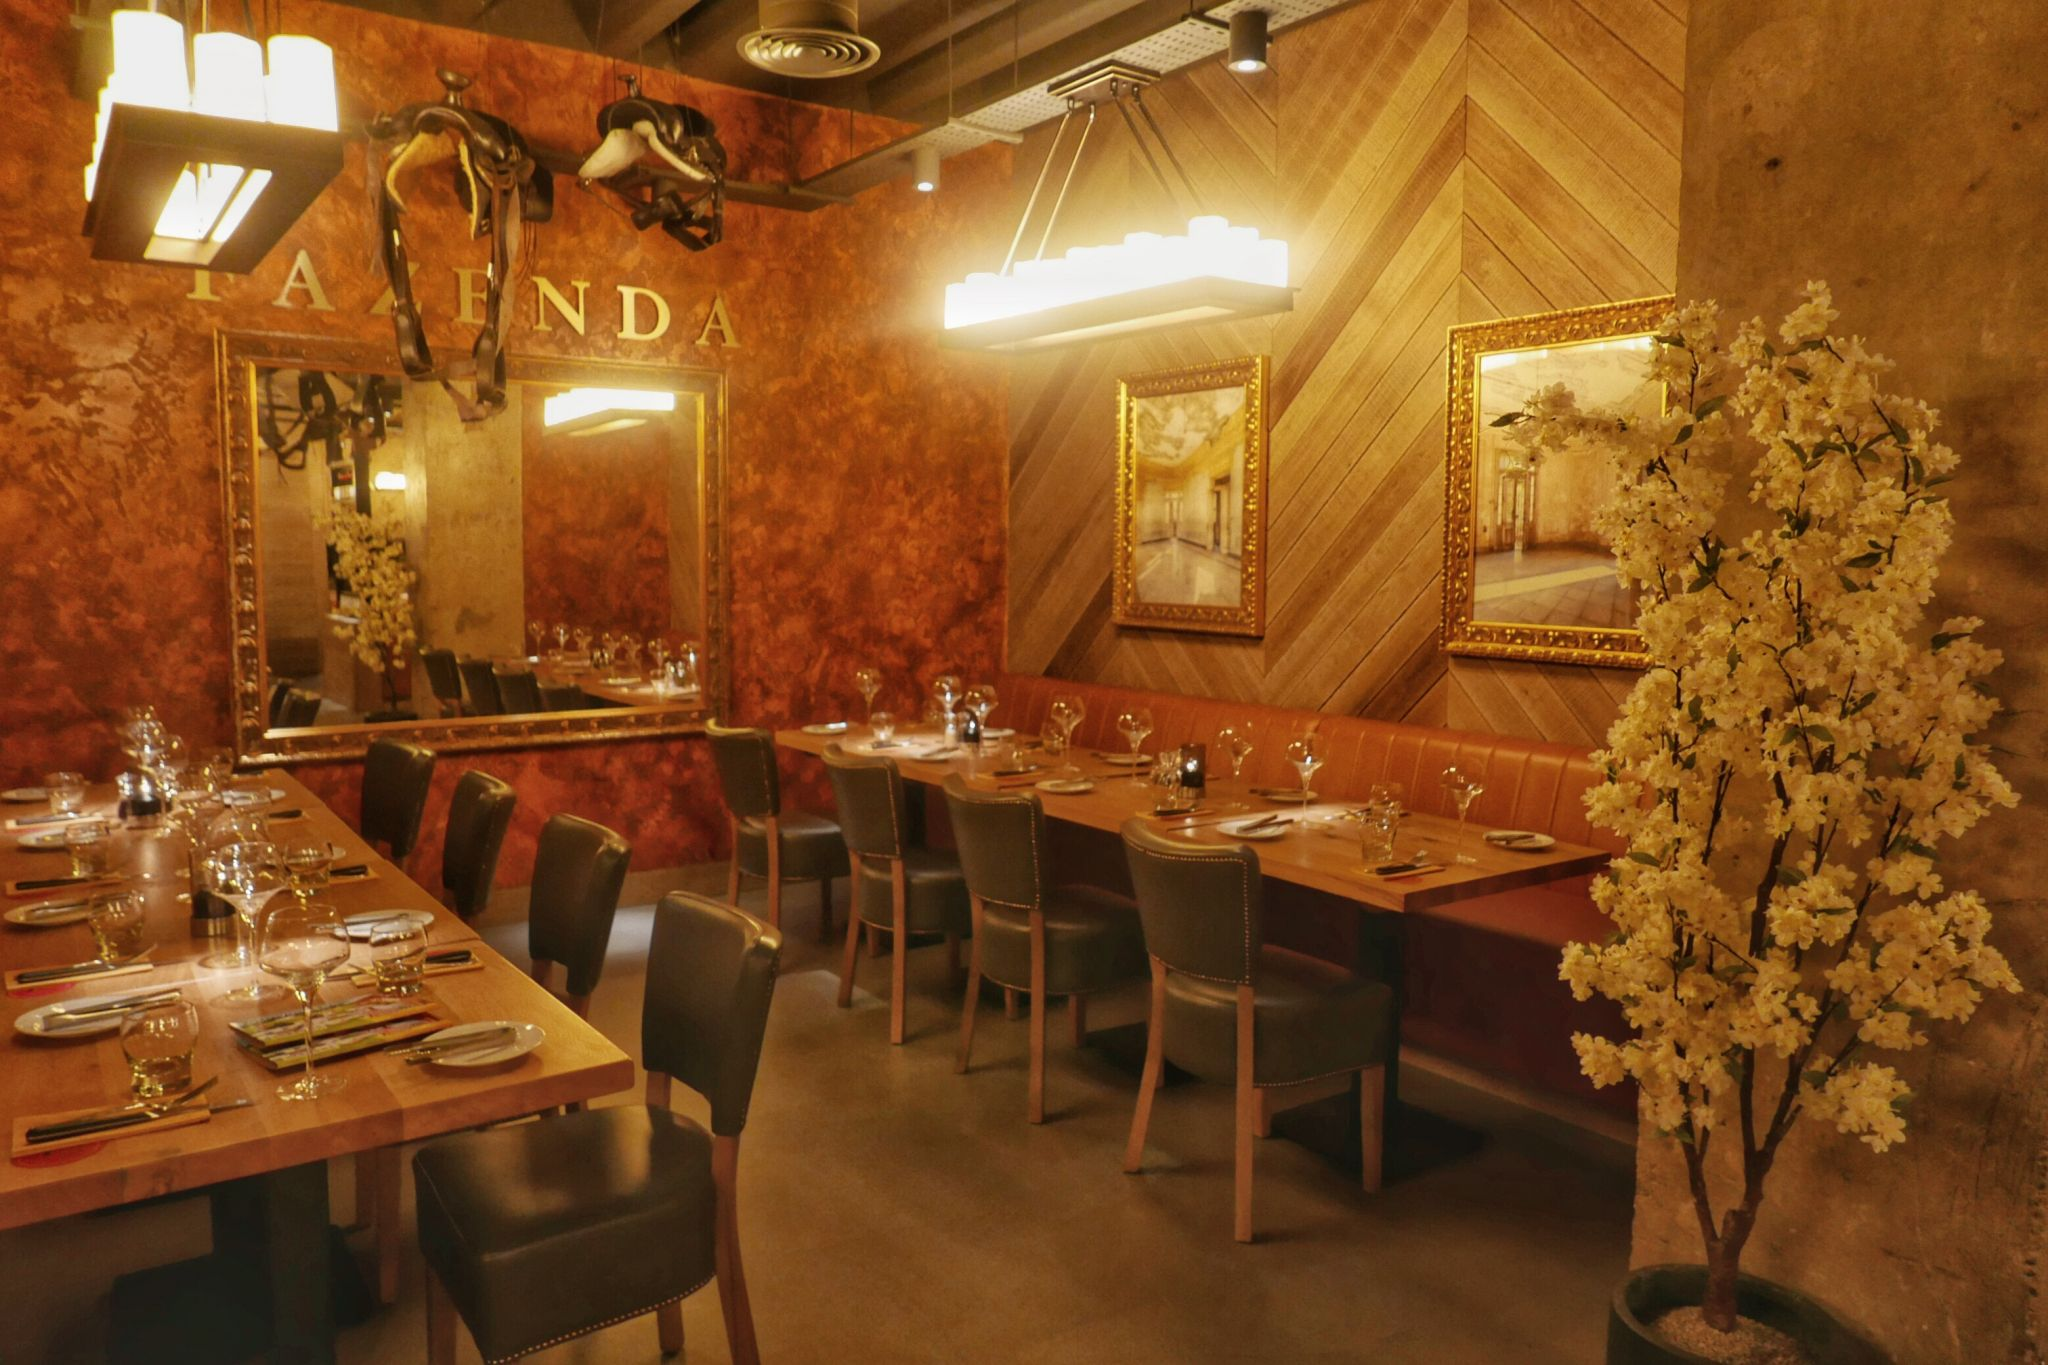 Pretty interior of Fazenda Birmingham. Planning on eating out in Birmingham? A Brummie Home and Abroad decided to spend January trying out new breakfast, lunch and dinner spots